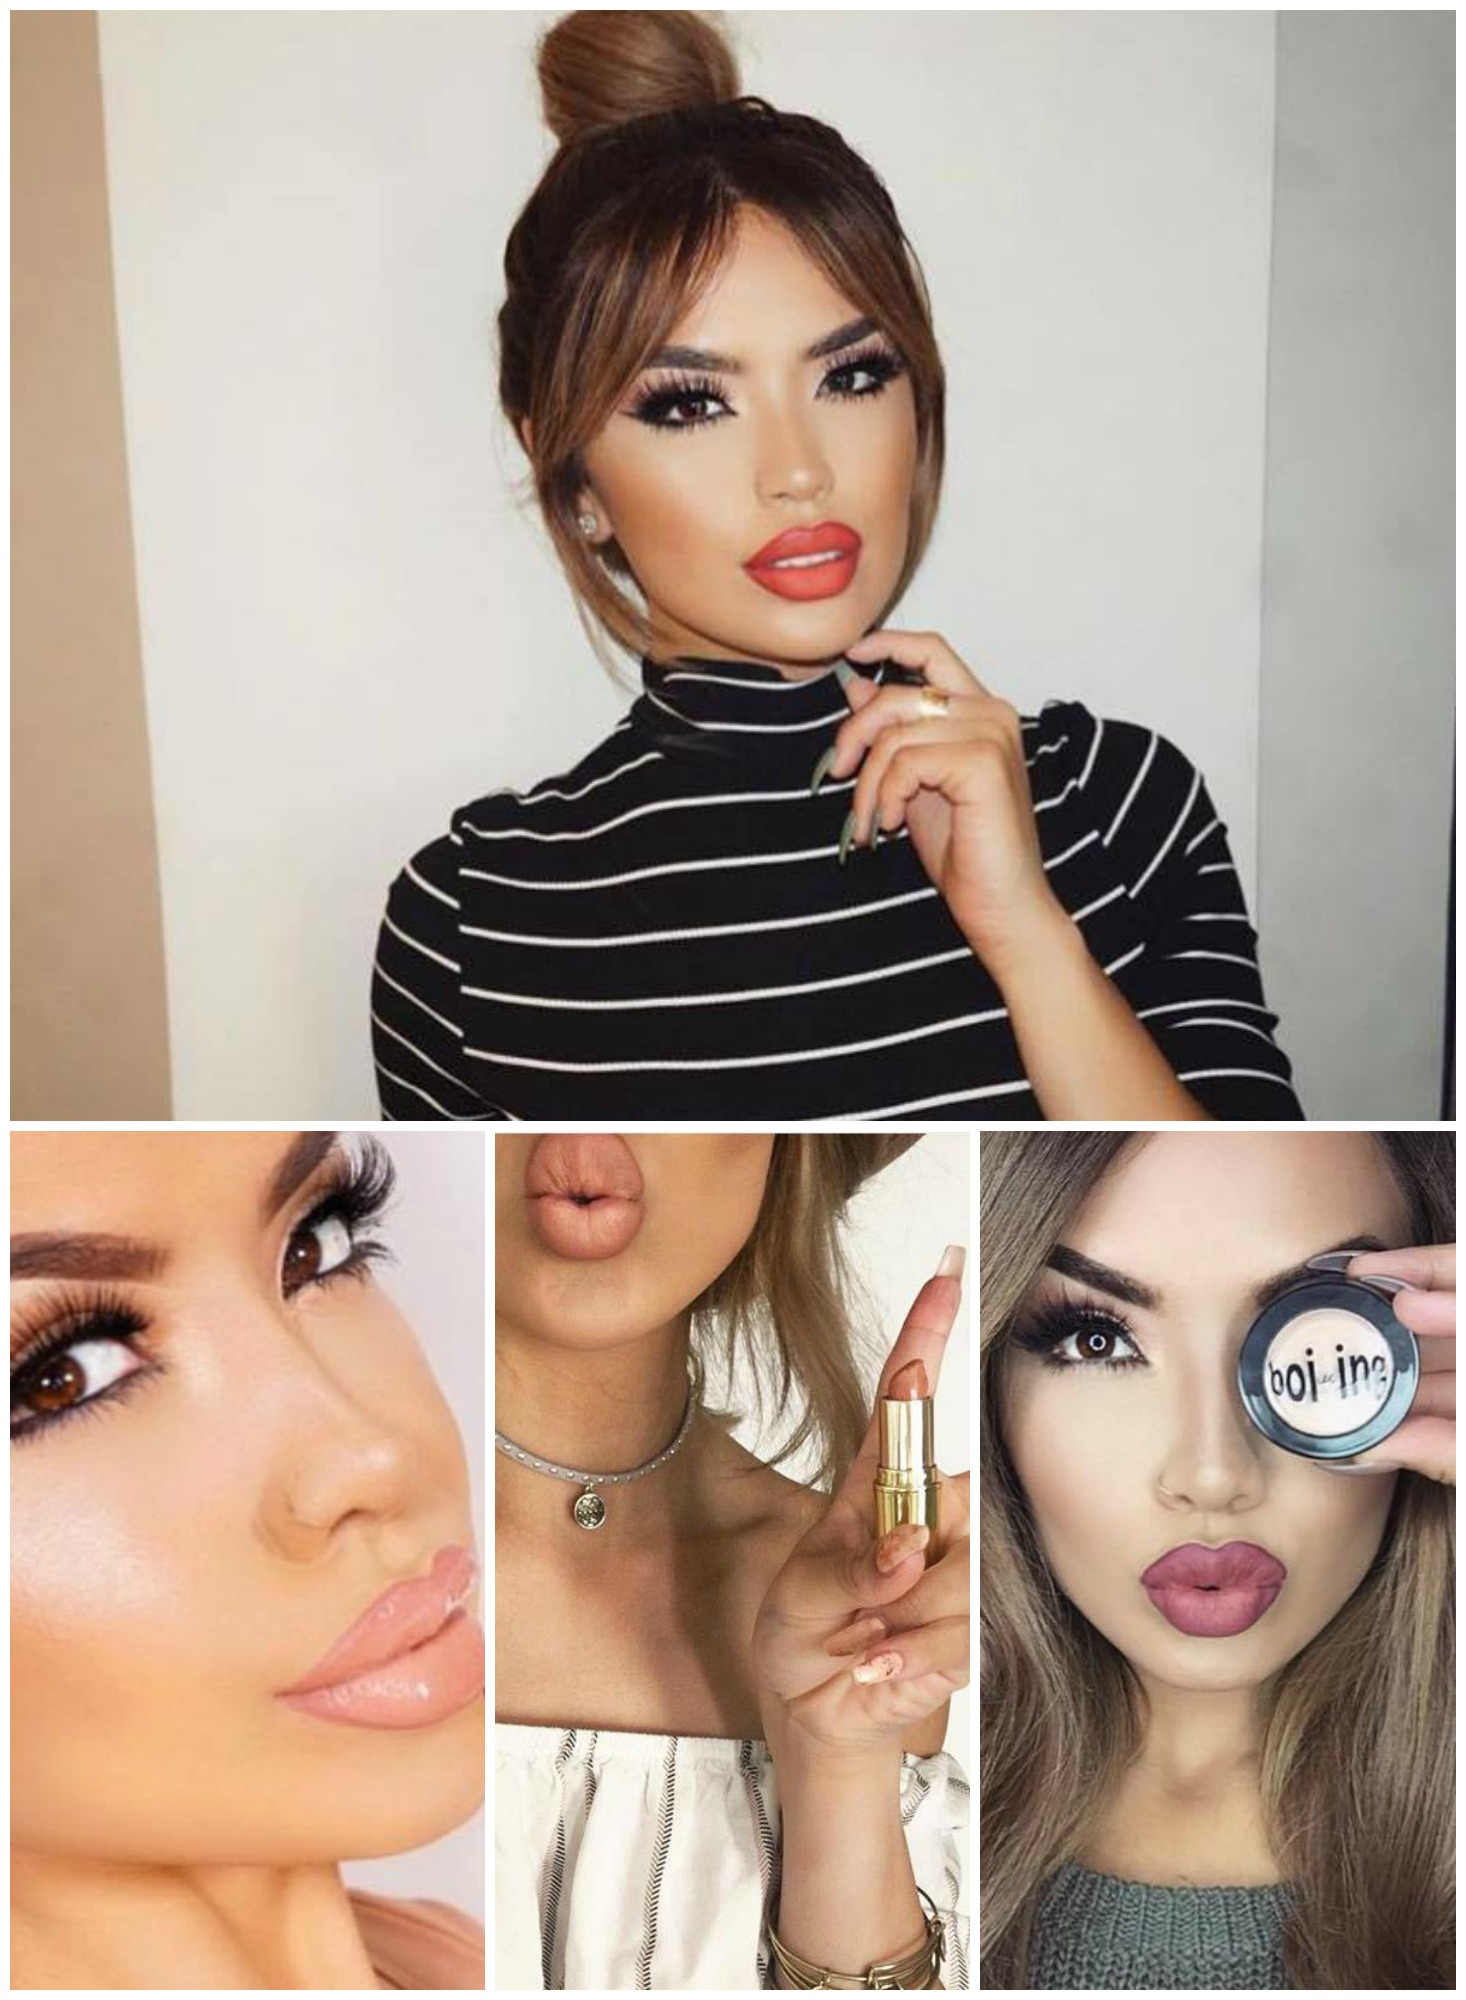 Instagram Name: ILuvSarahii